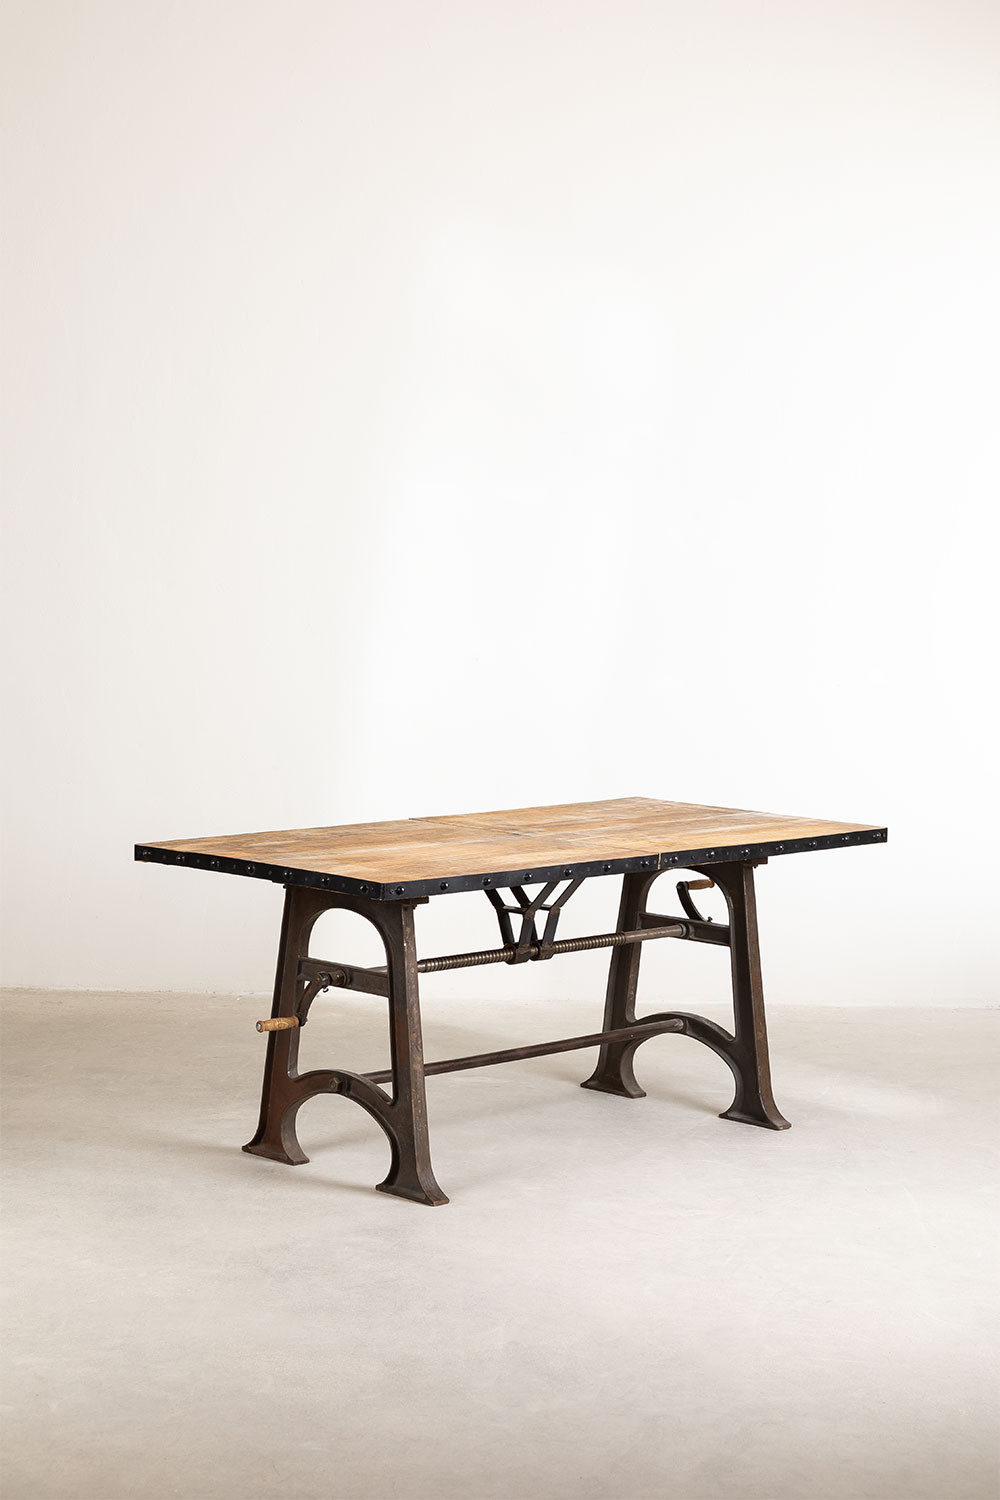 Extendable Wooden Dining Table (184-236x91 cm) Tich , gallery image 925791